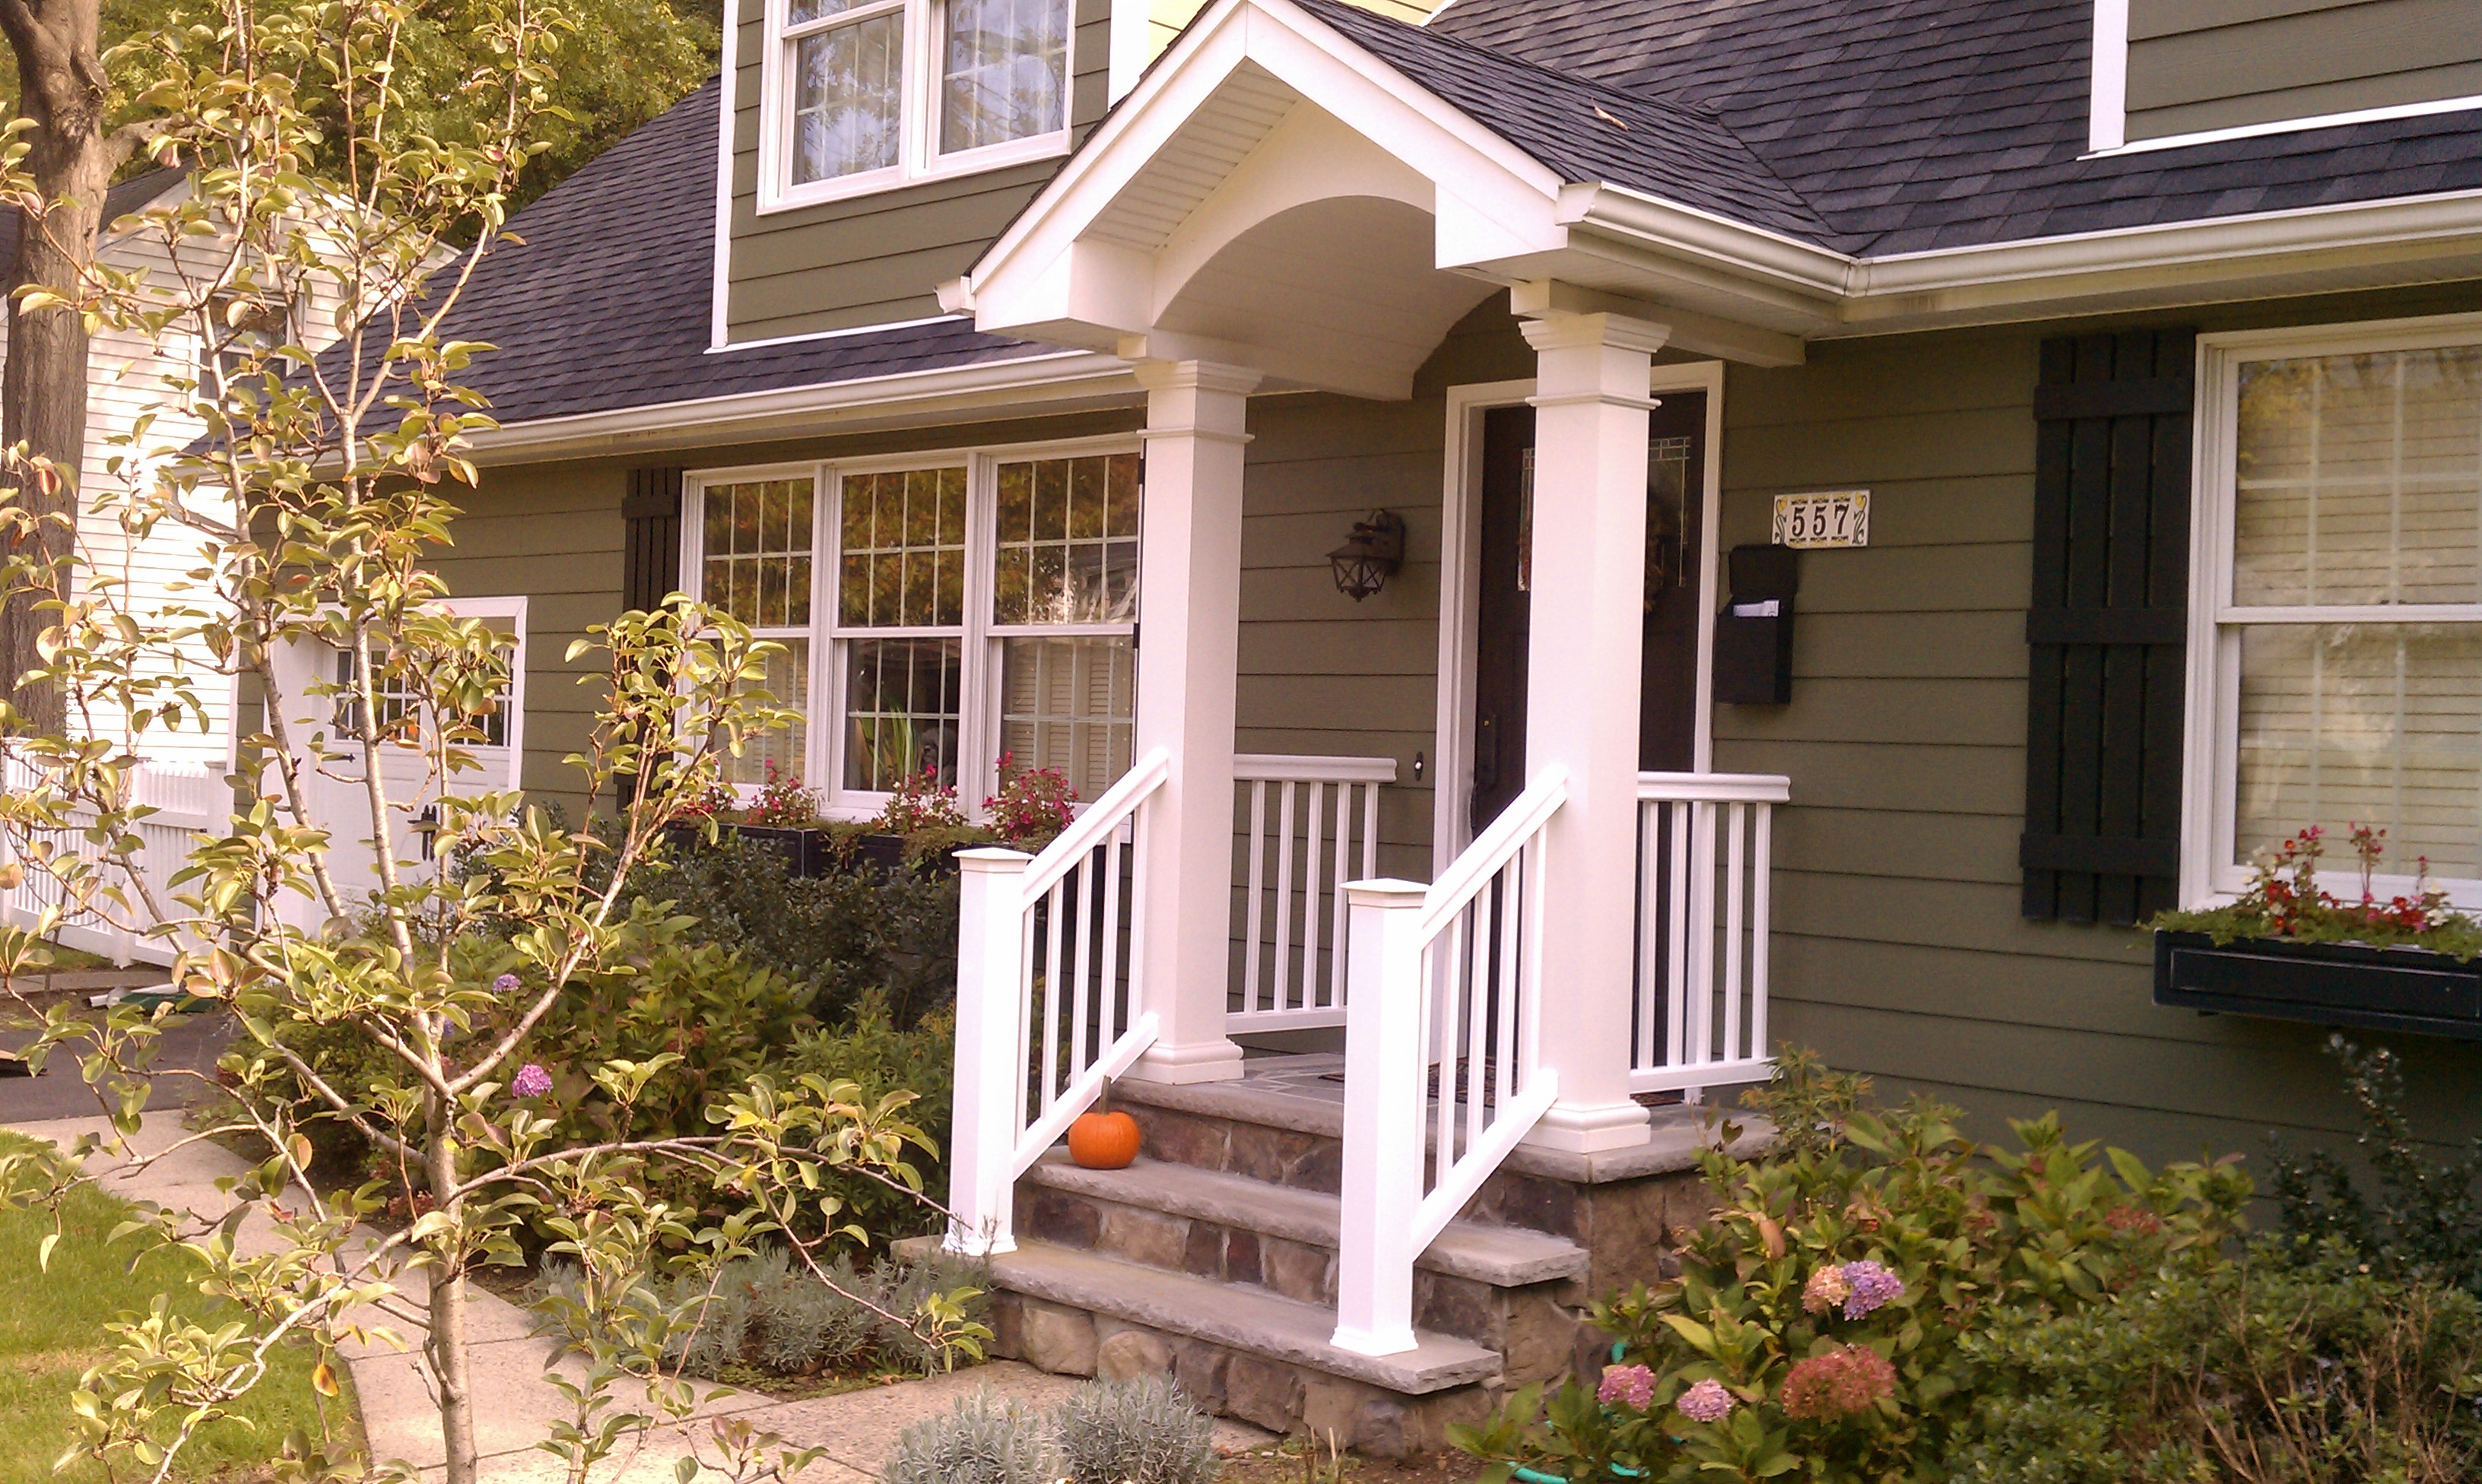 Gallery of decorating vinyl railing for front porch ideas pictures - Bergendecks Project